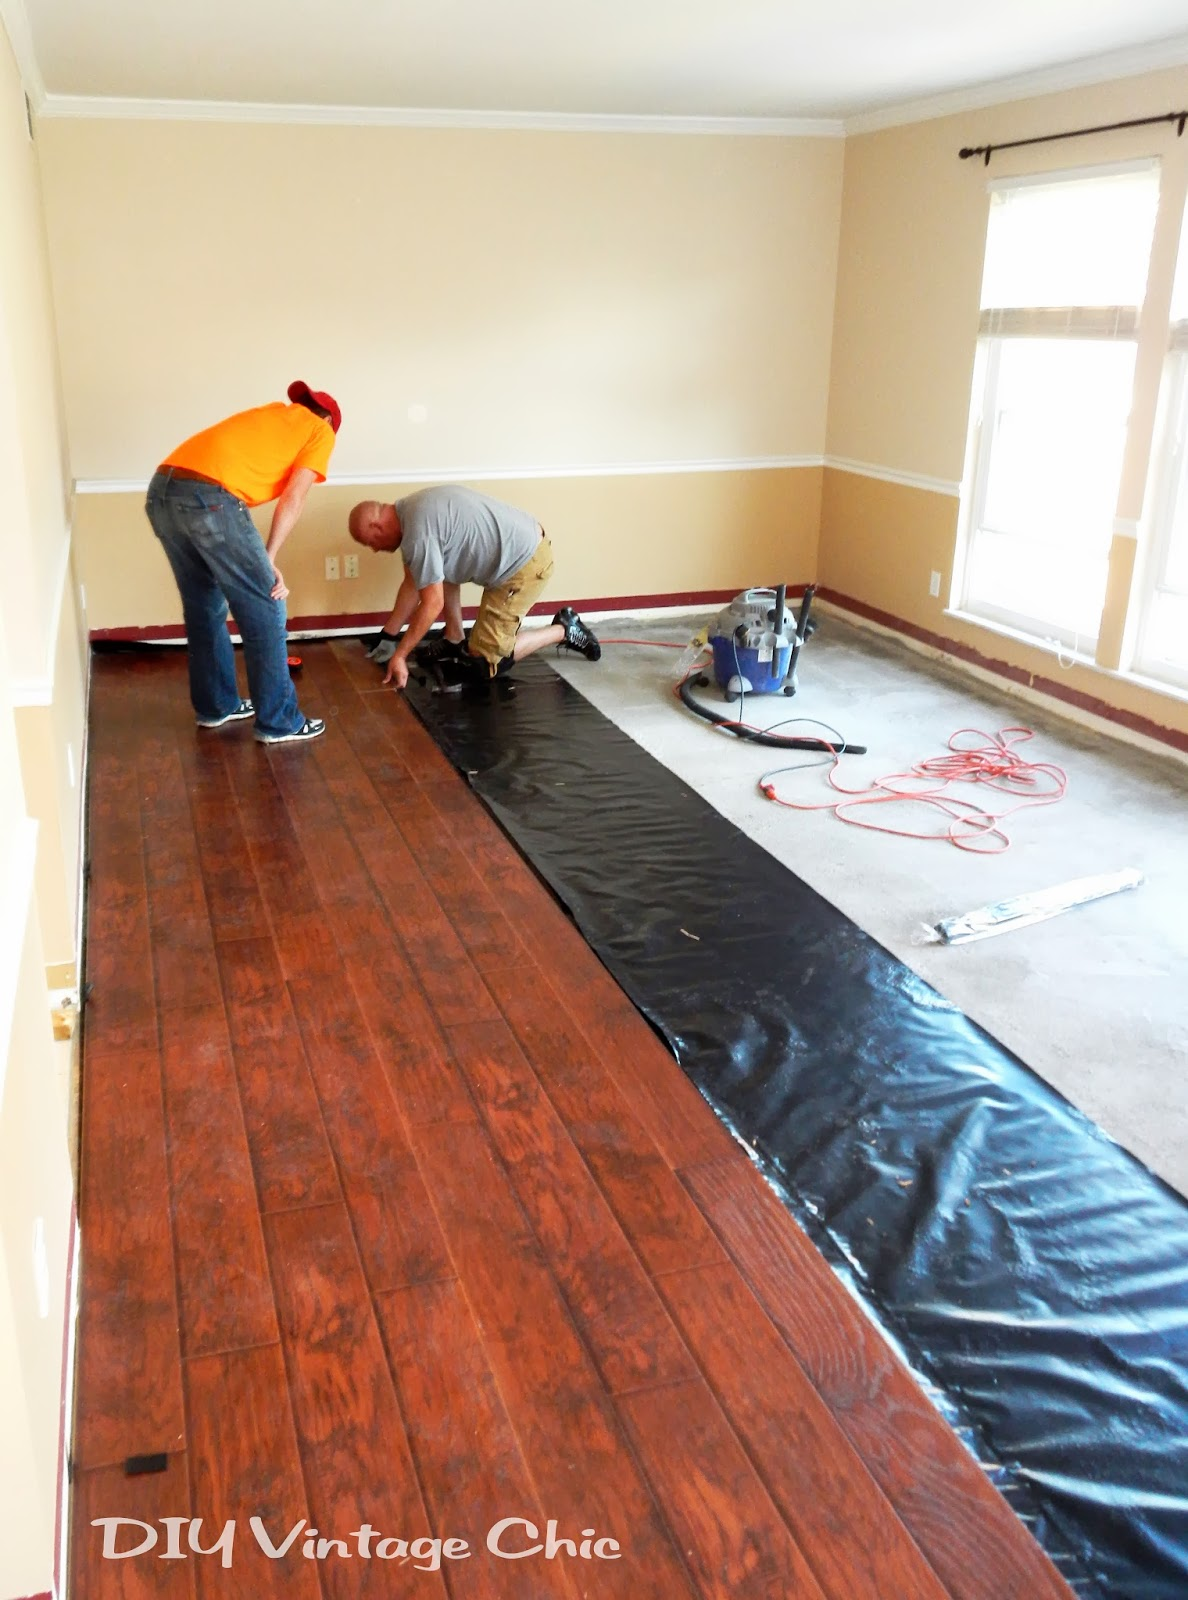 Diy Vintage Chic Diy Laminate Flooring